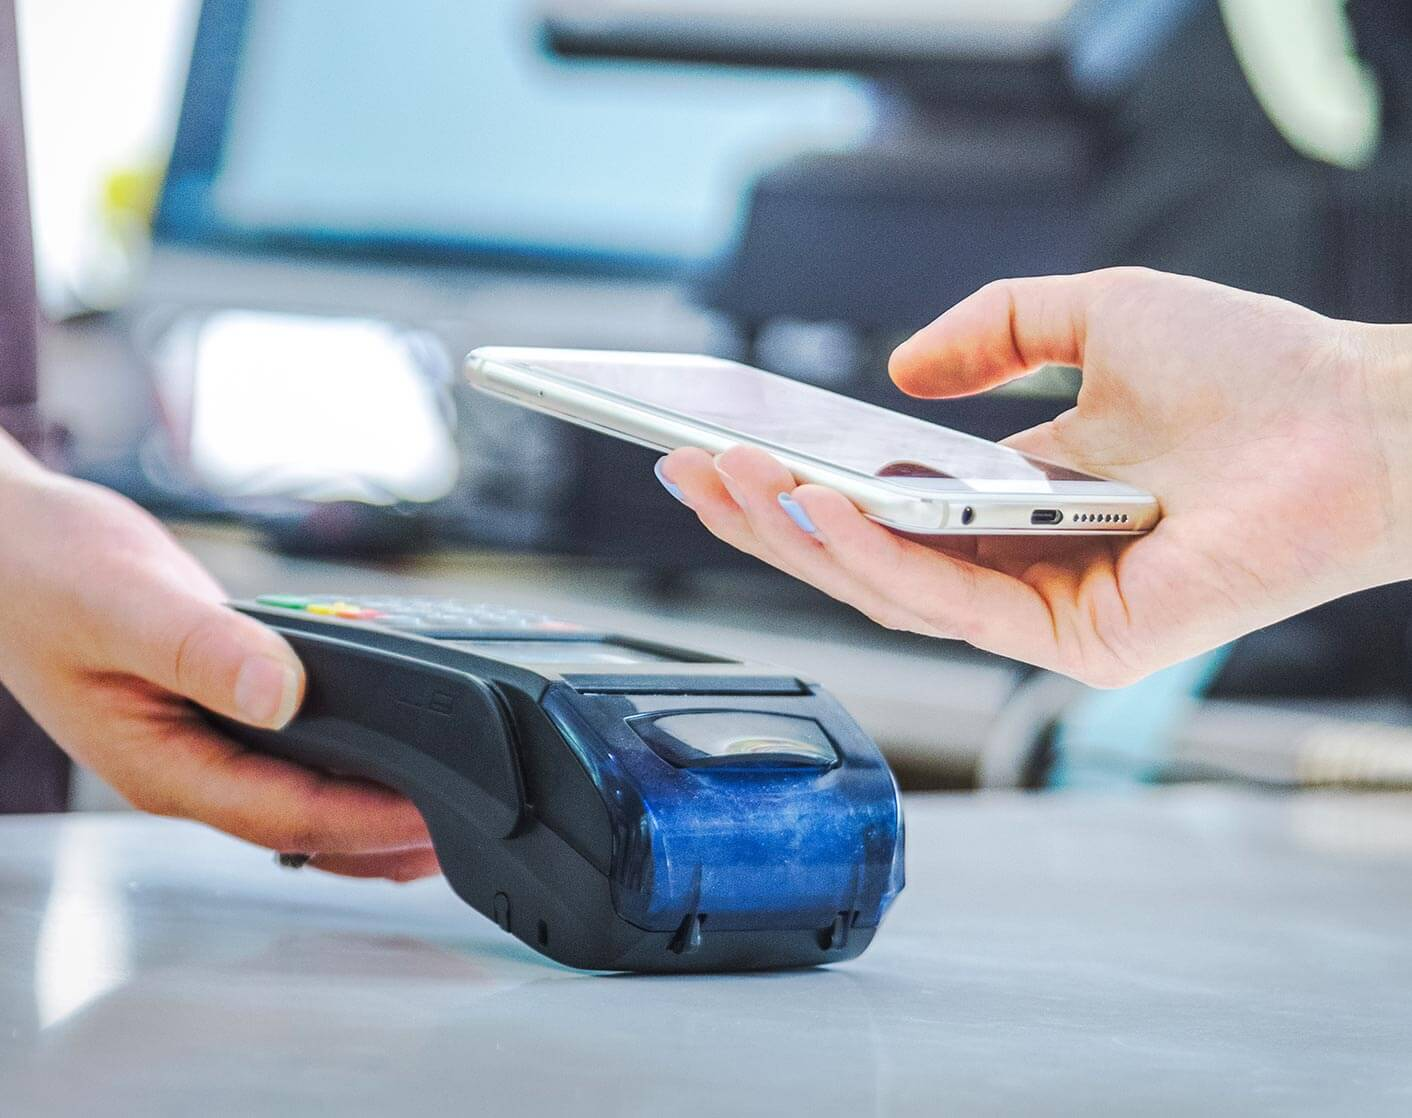 person using mobile wallet on debit credit pin pad